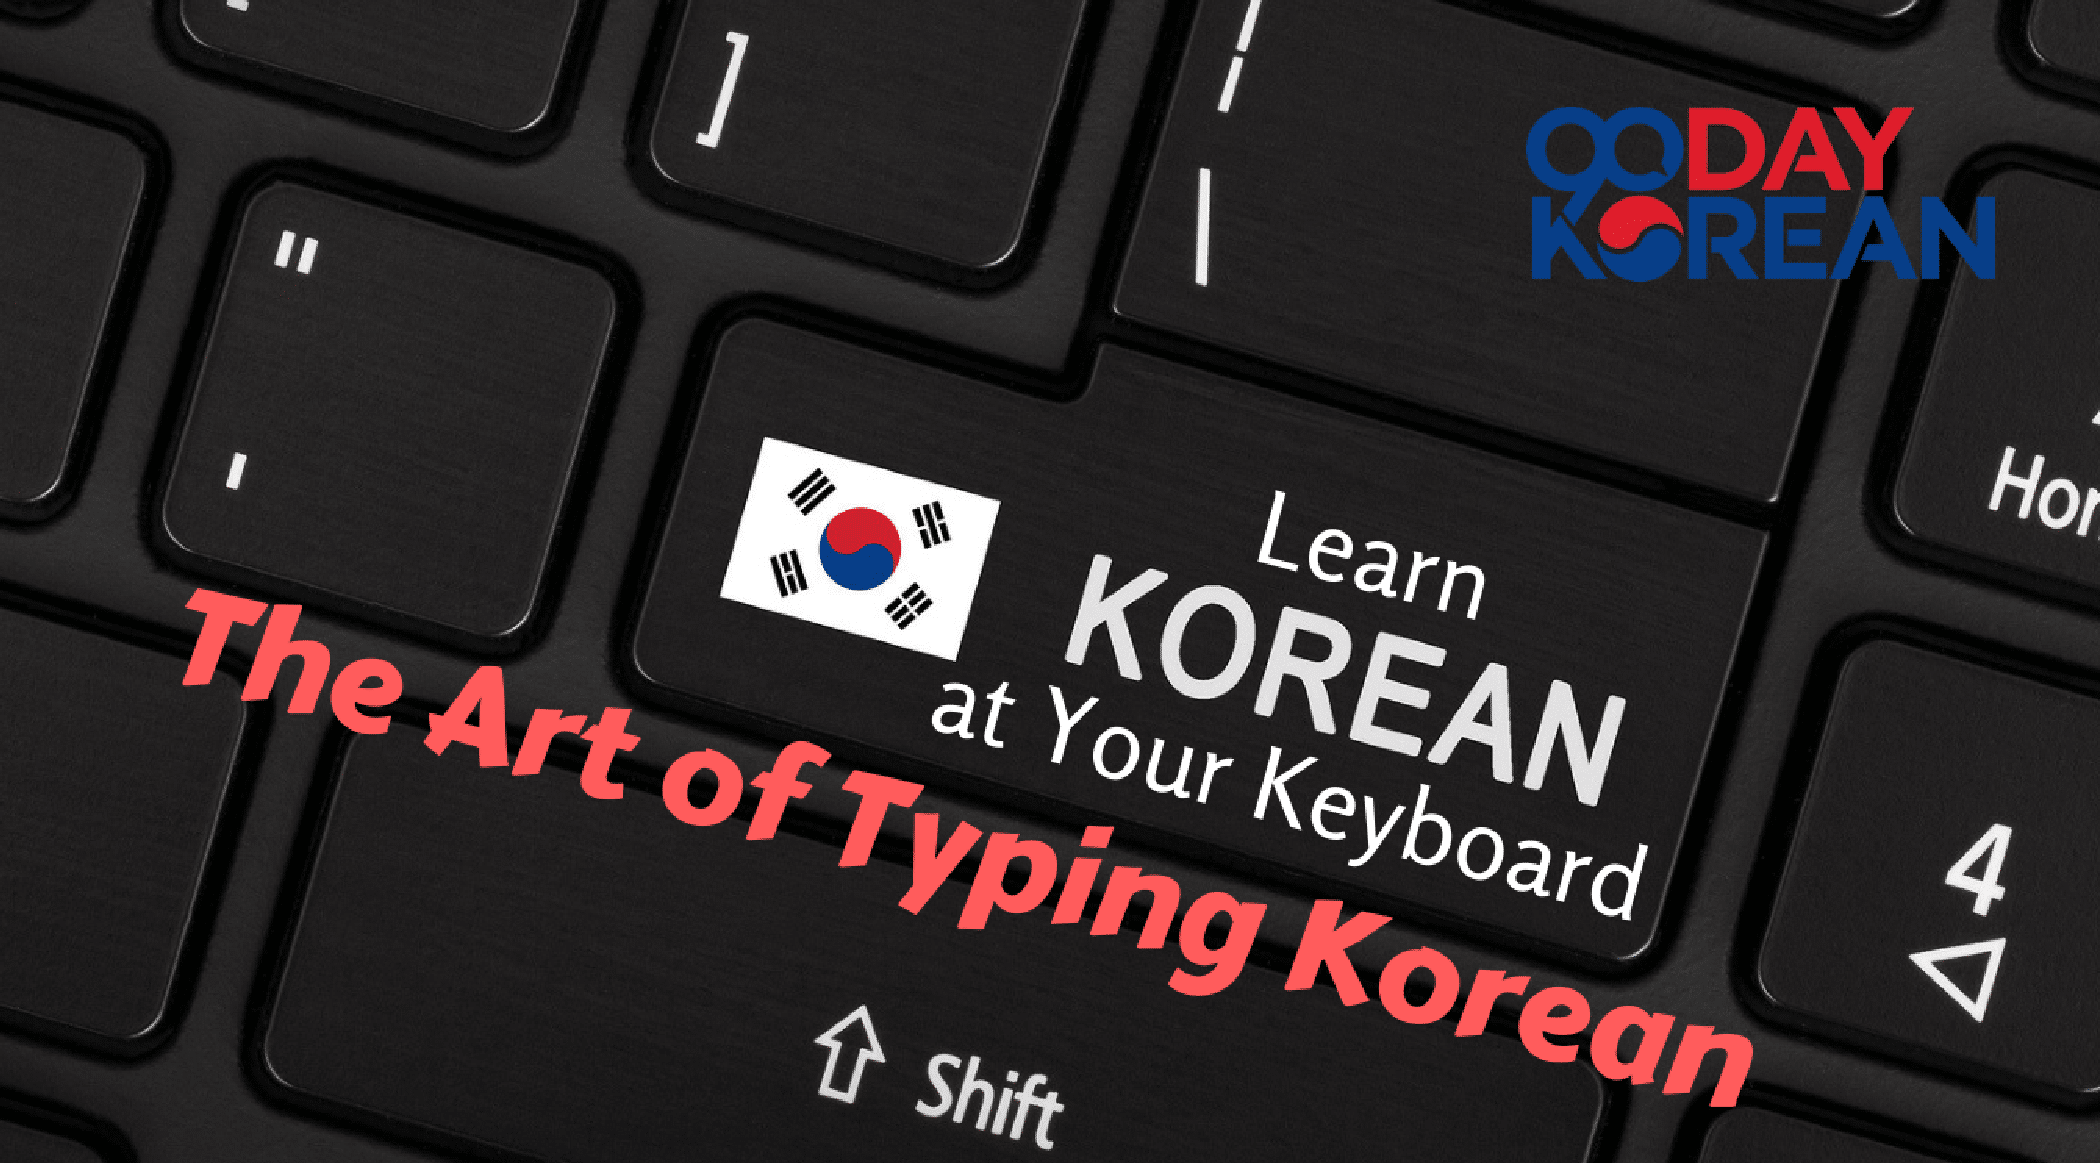 The Art of Typing Korean - Learn Korean